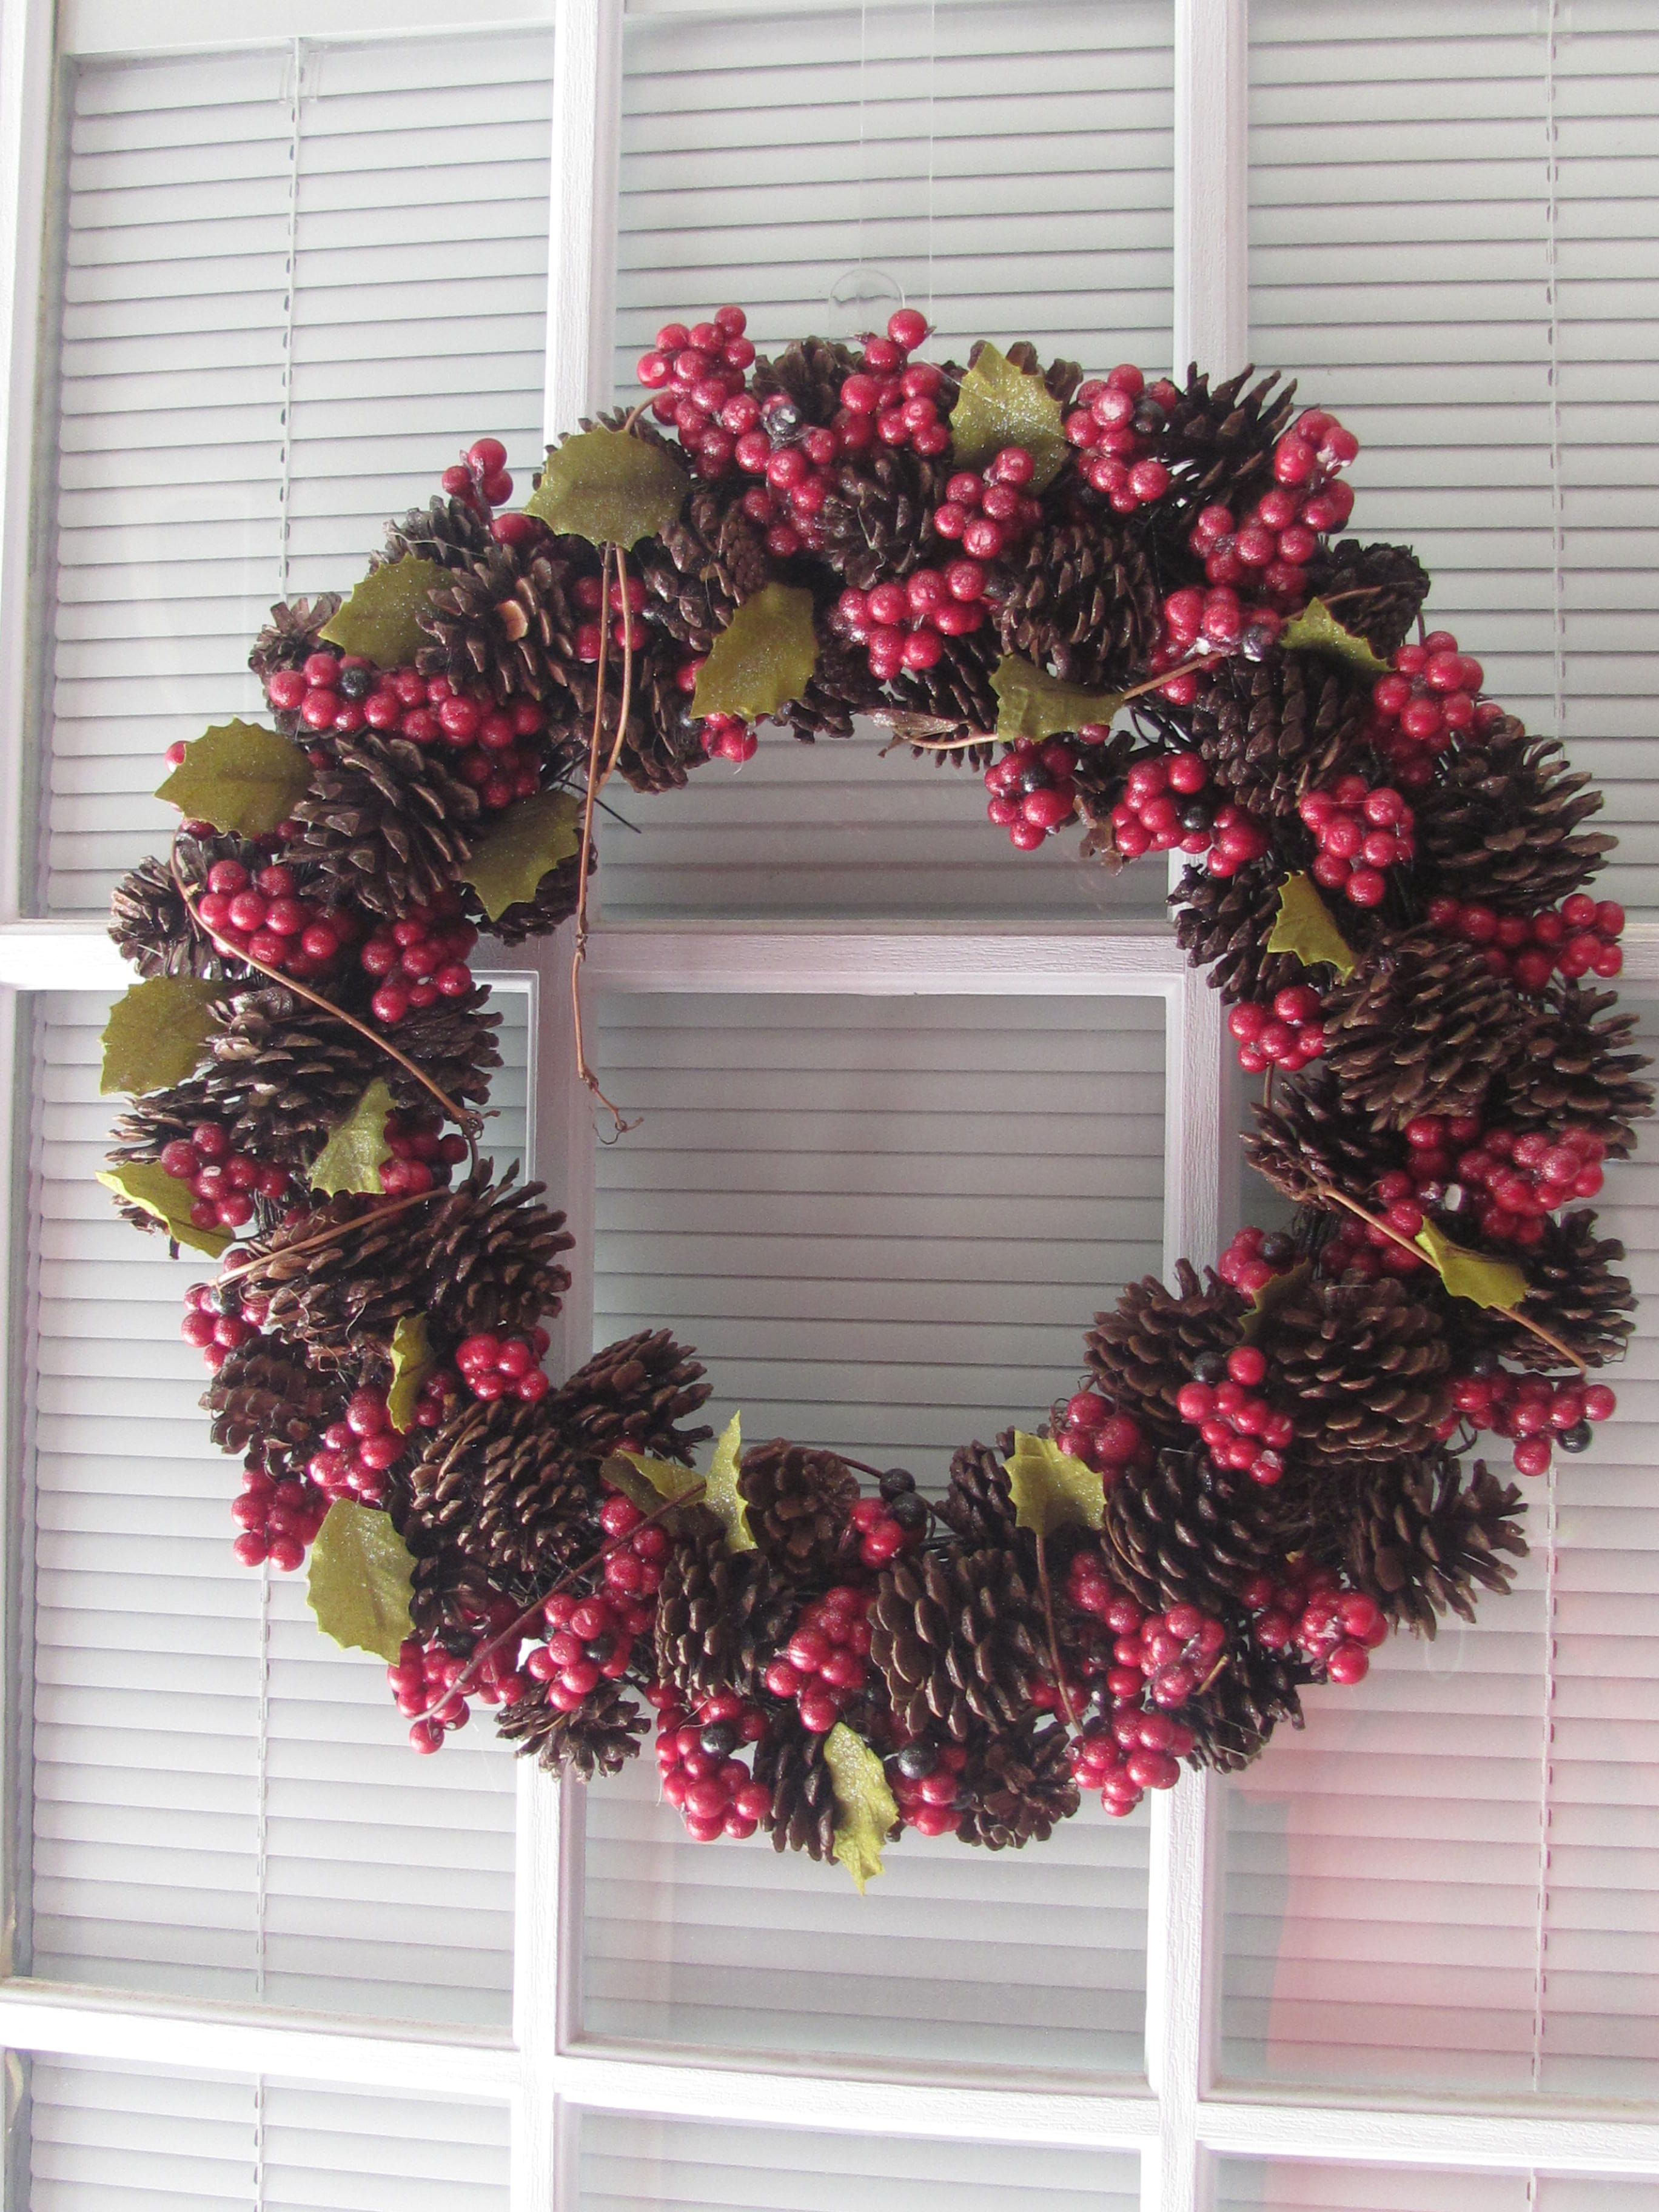 Pinecones & holly berry Christmas wreath.